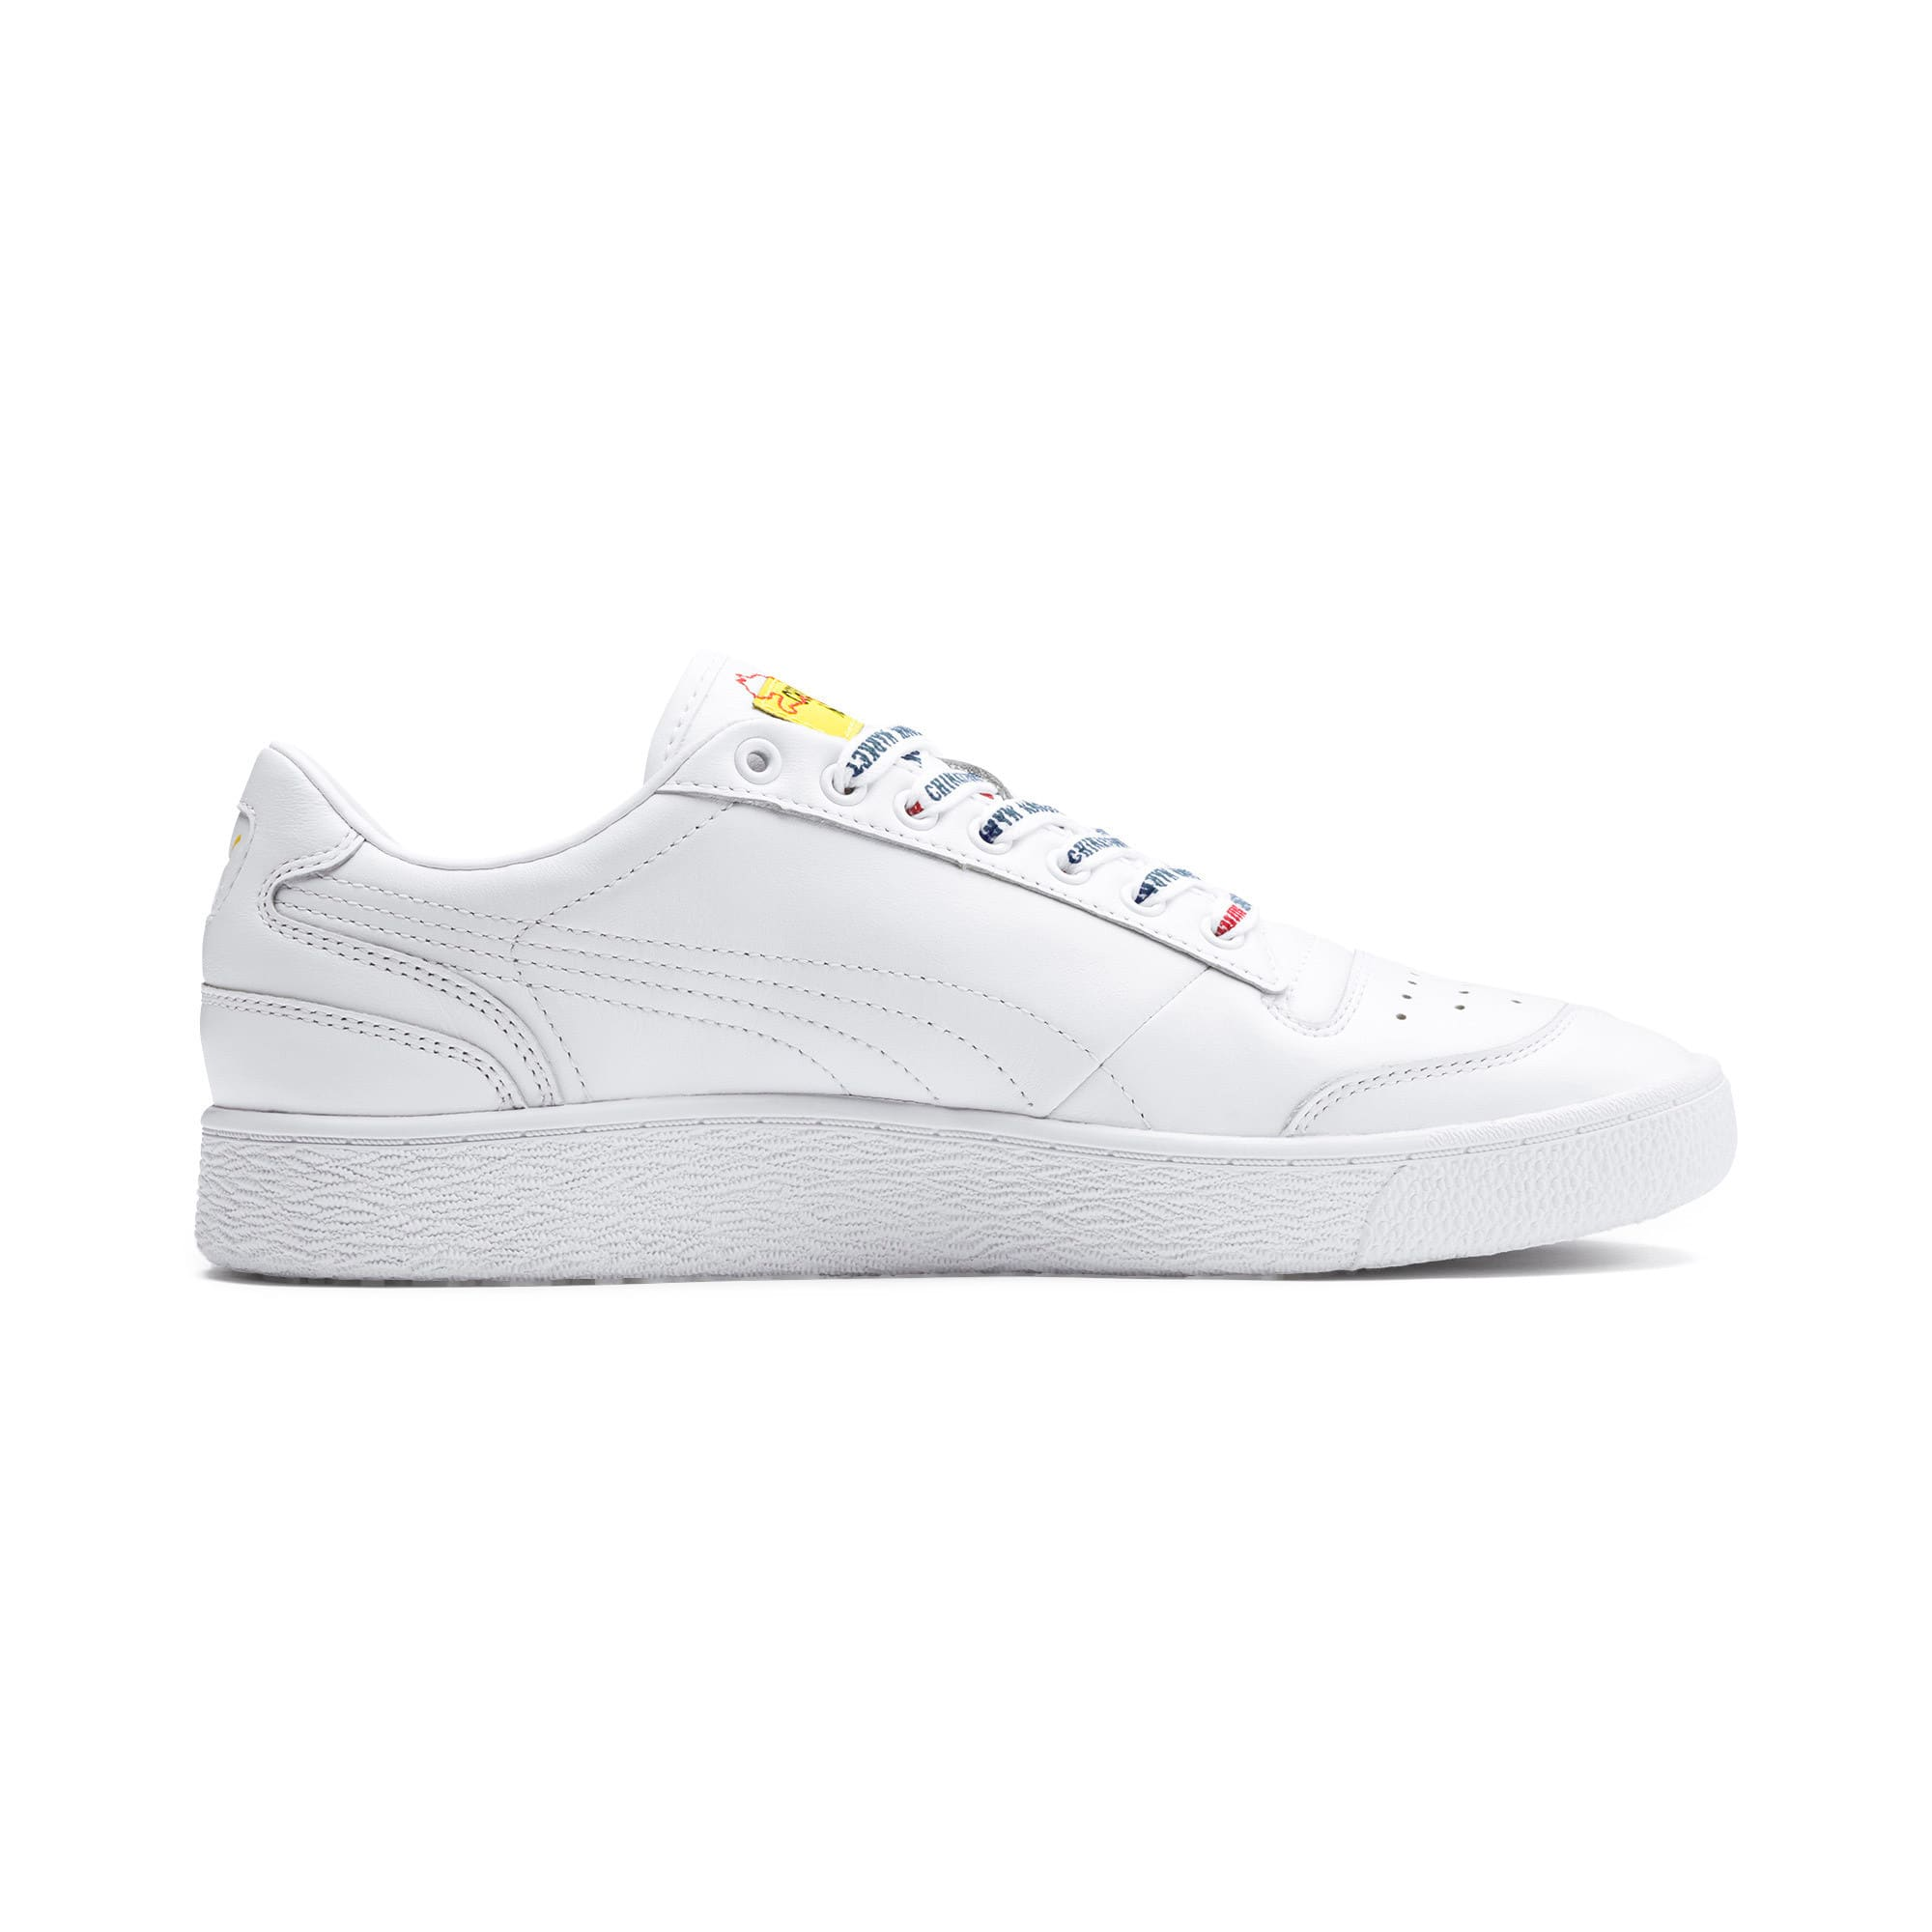 Thumbnail 5 of PUMA x CHINATOWN MARKET Ralph Sampson Lo Sneakers, Puma White, medium